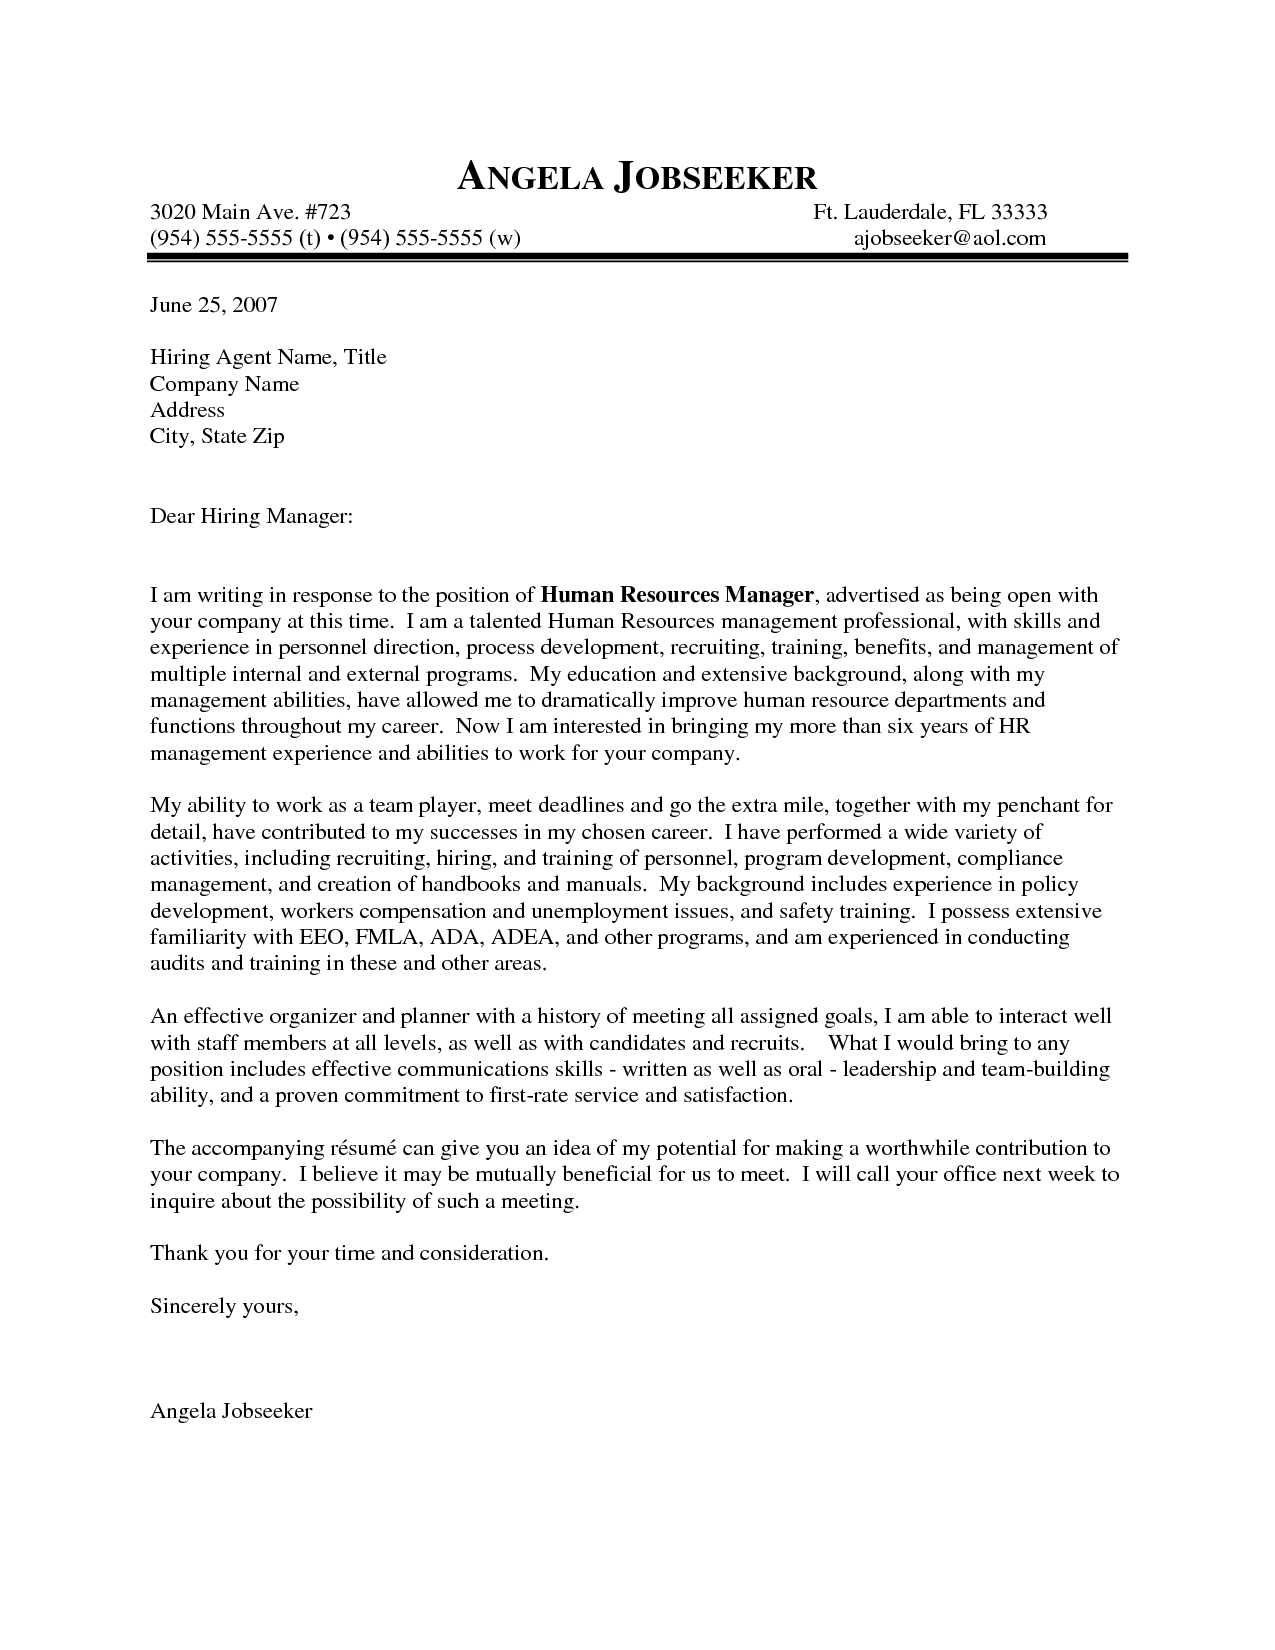 Outstanding cover letter examples hr manager cover letter outstanding cover letter examples hr manager cover letter example madrichimfo Choice Image